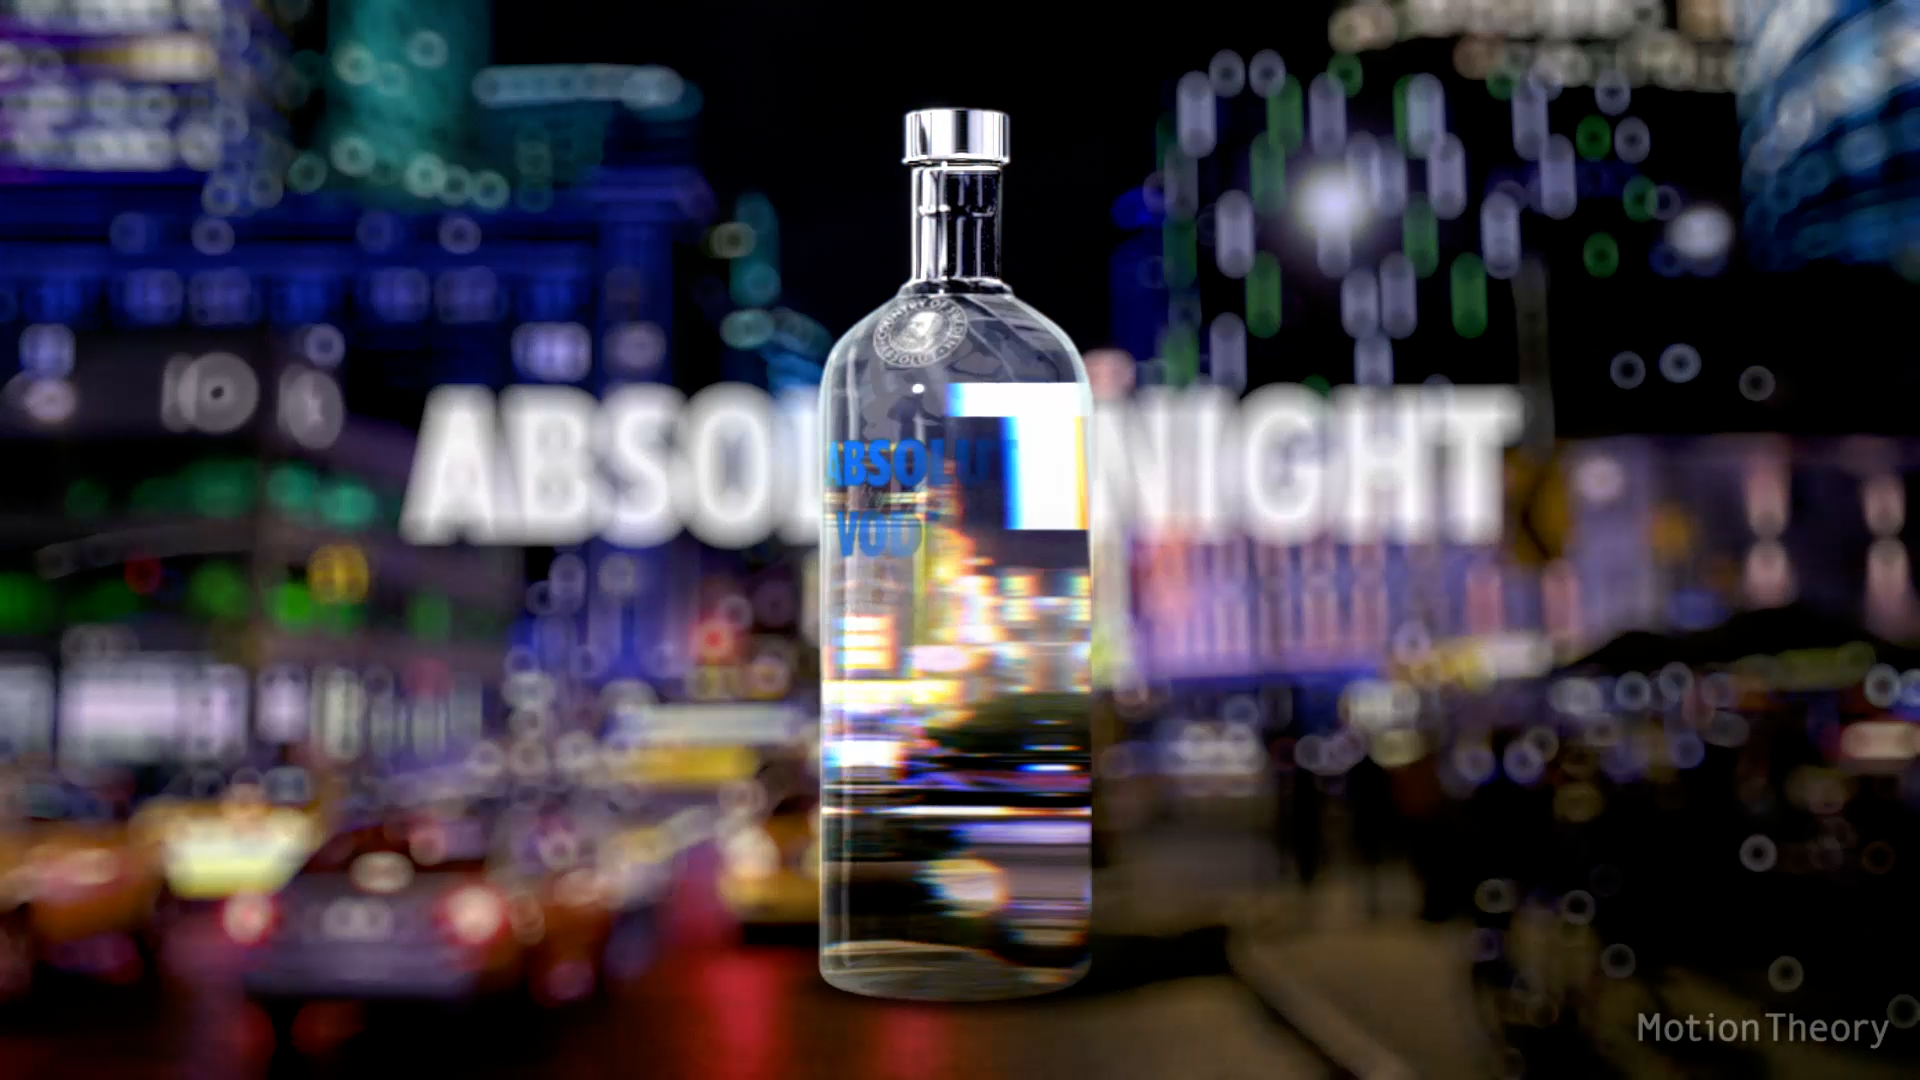 ABSOLUT_00001.png